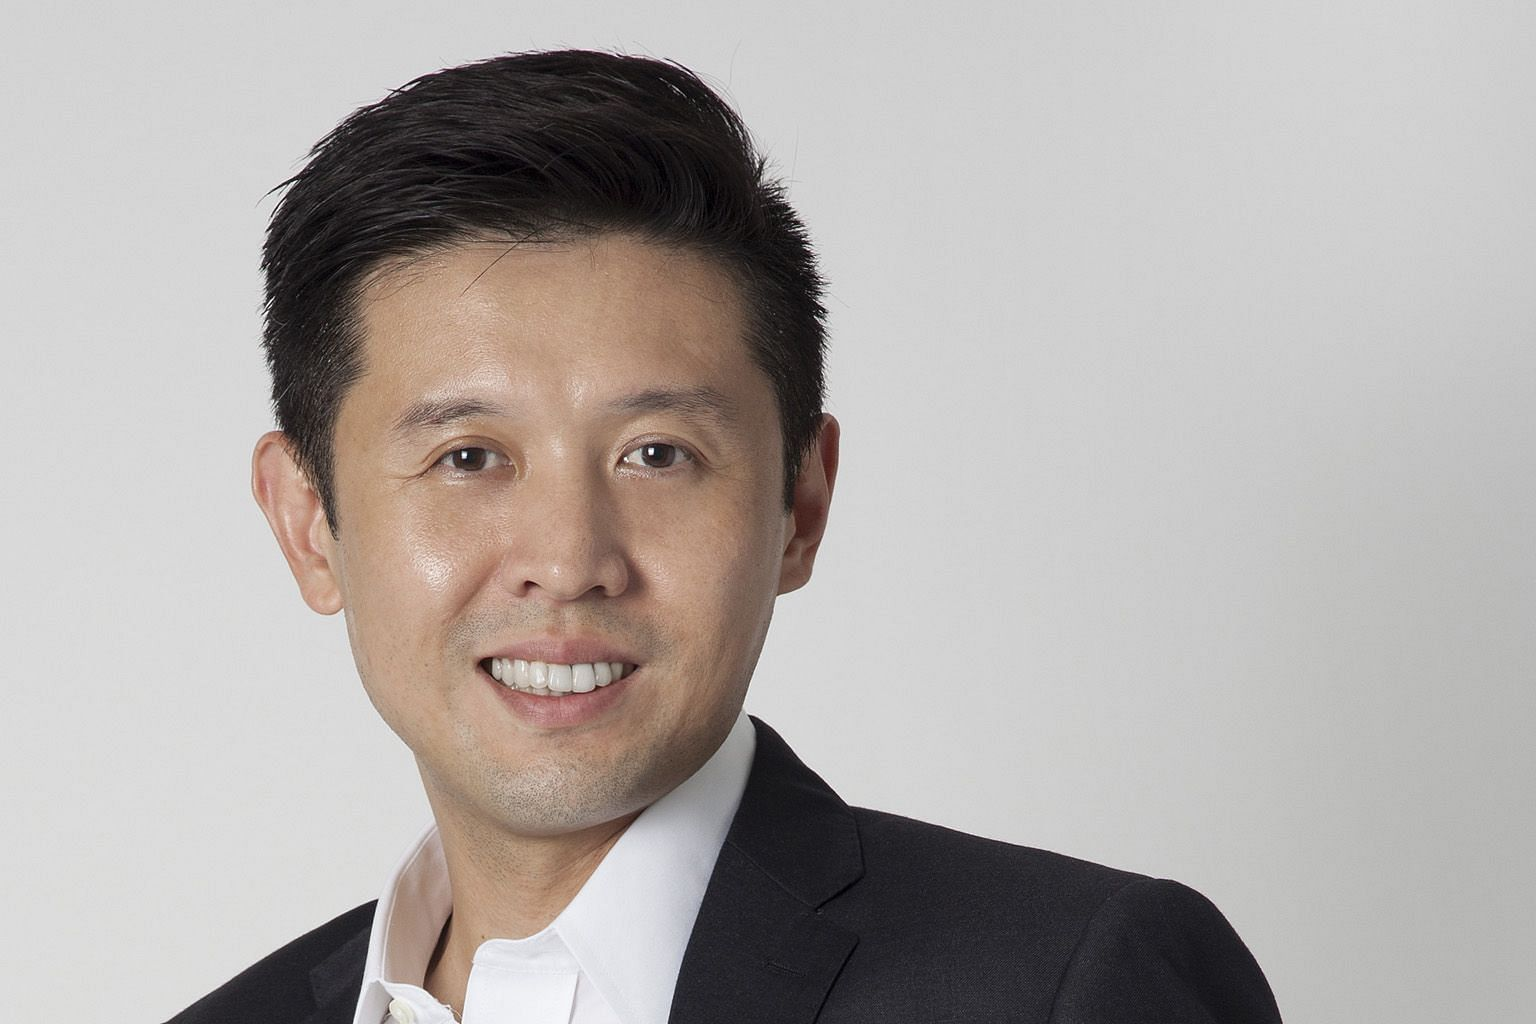 Mr Marcus Chew, Income's chief marketing officer, says it is recommended that critical illness coverage should be at least three times your annual income to protect against income loss as a result of a critical illness.